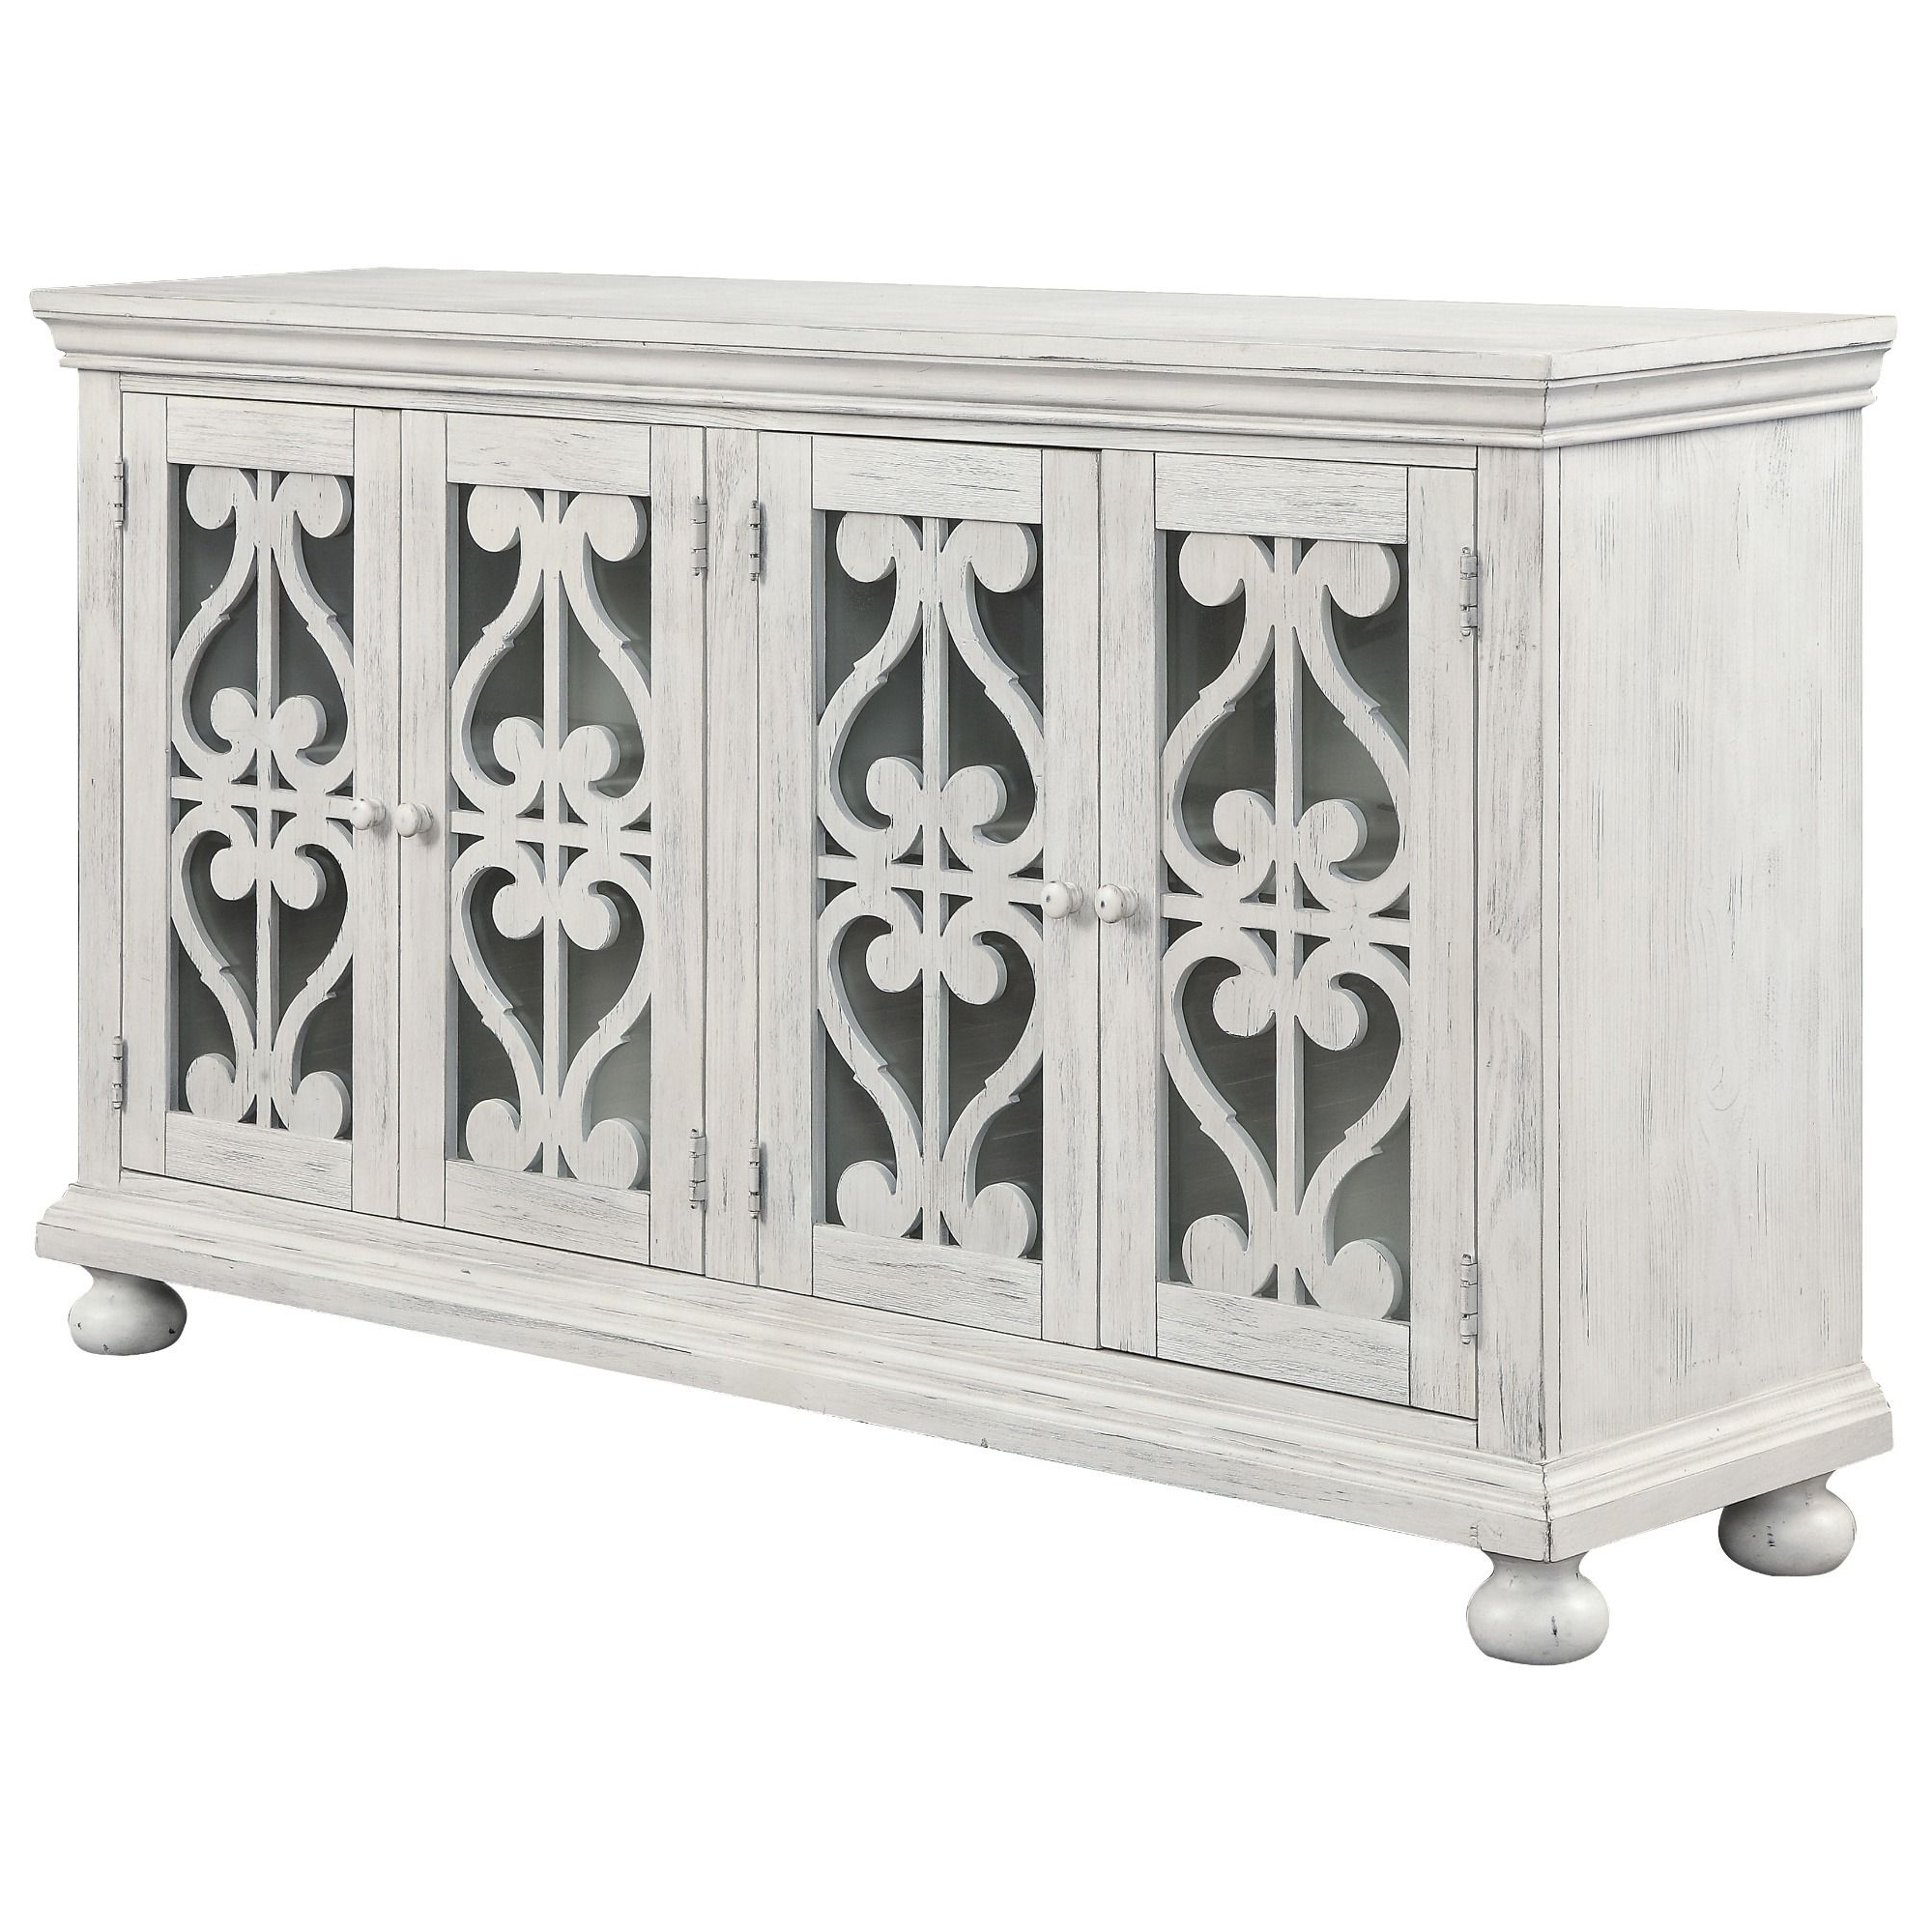 The Orchard House Dining Collection Features This Stunning Pertaining To Well Known Errol Media Credenzas (View 15 of 20)